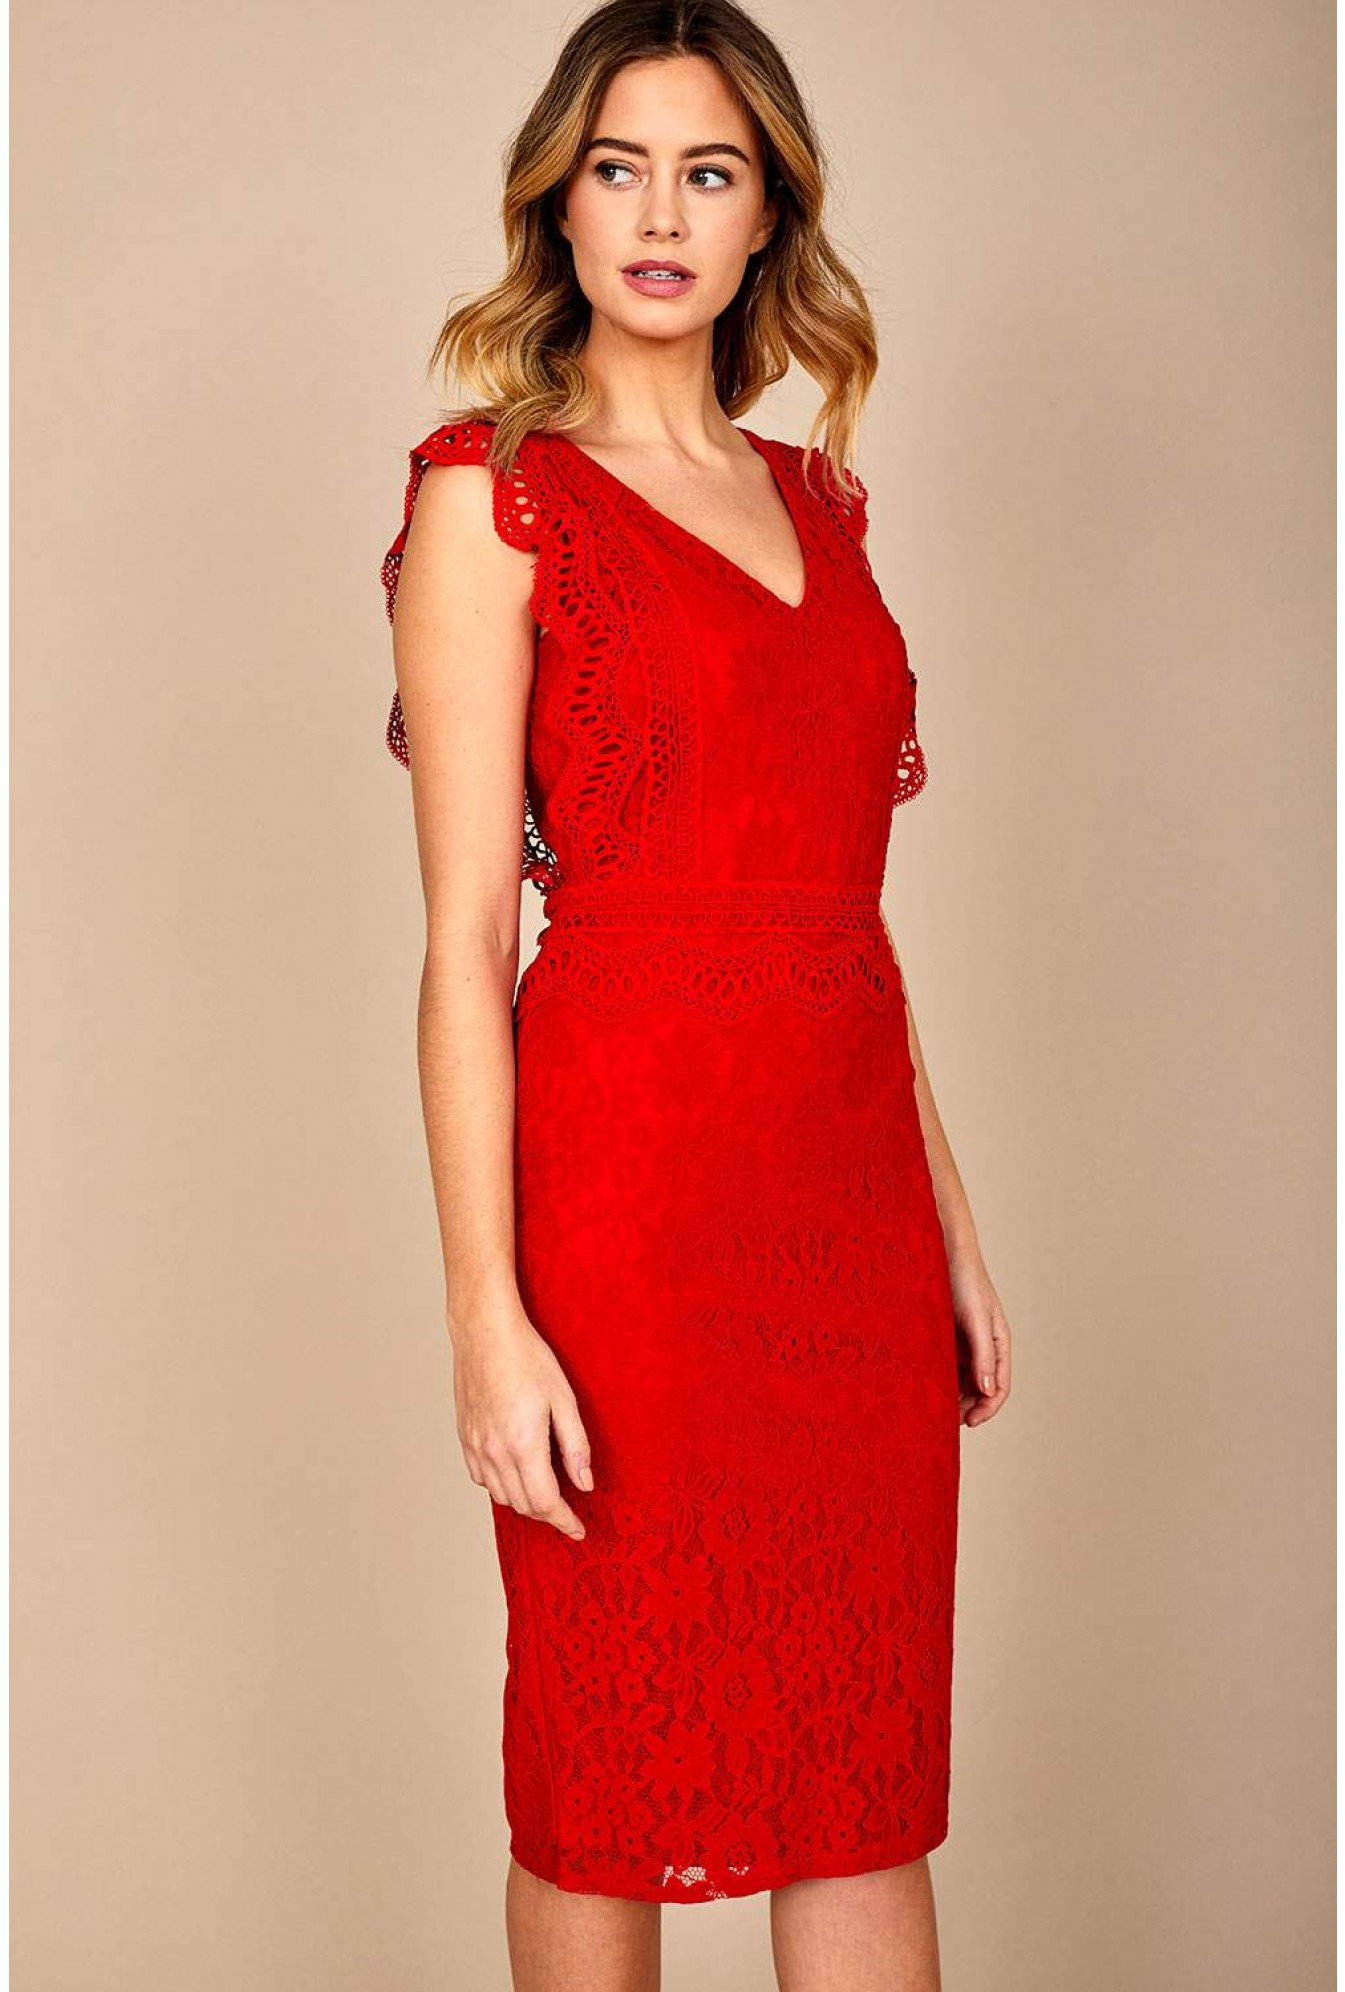 73bb77a70c5eb0 Marc Angelo Nikki Lace Occasion Dress in Red